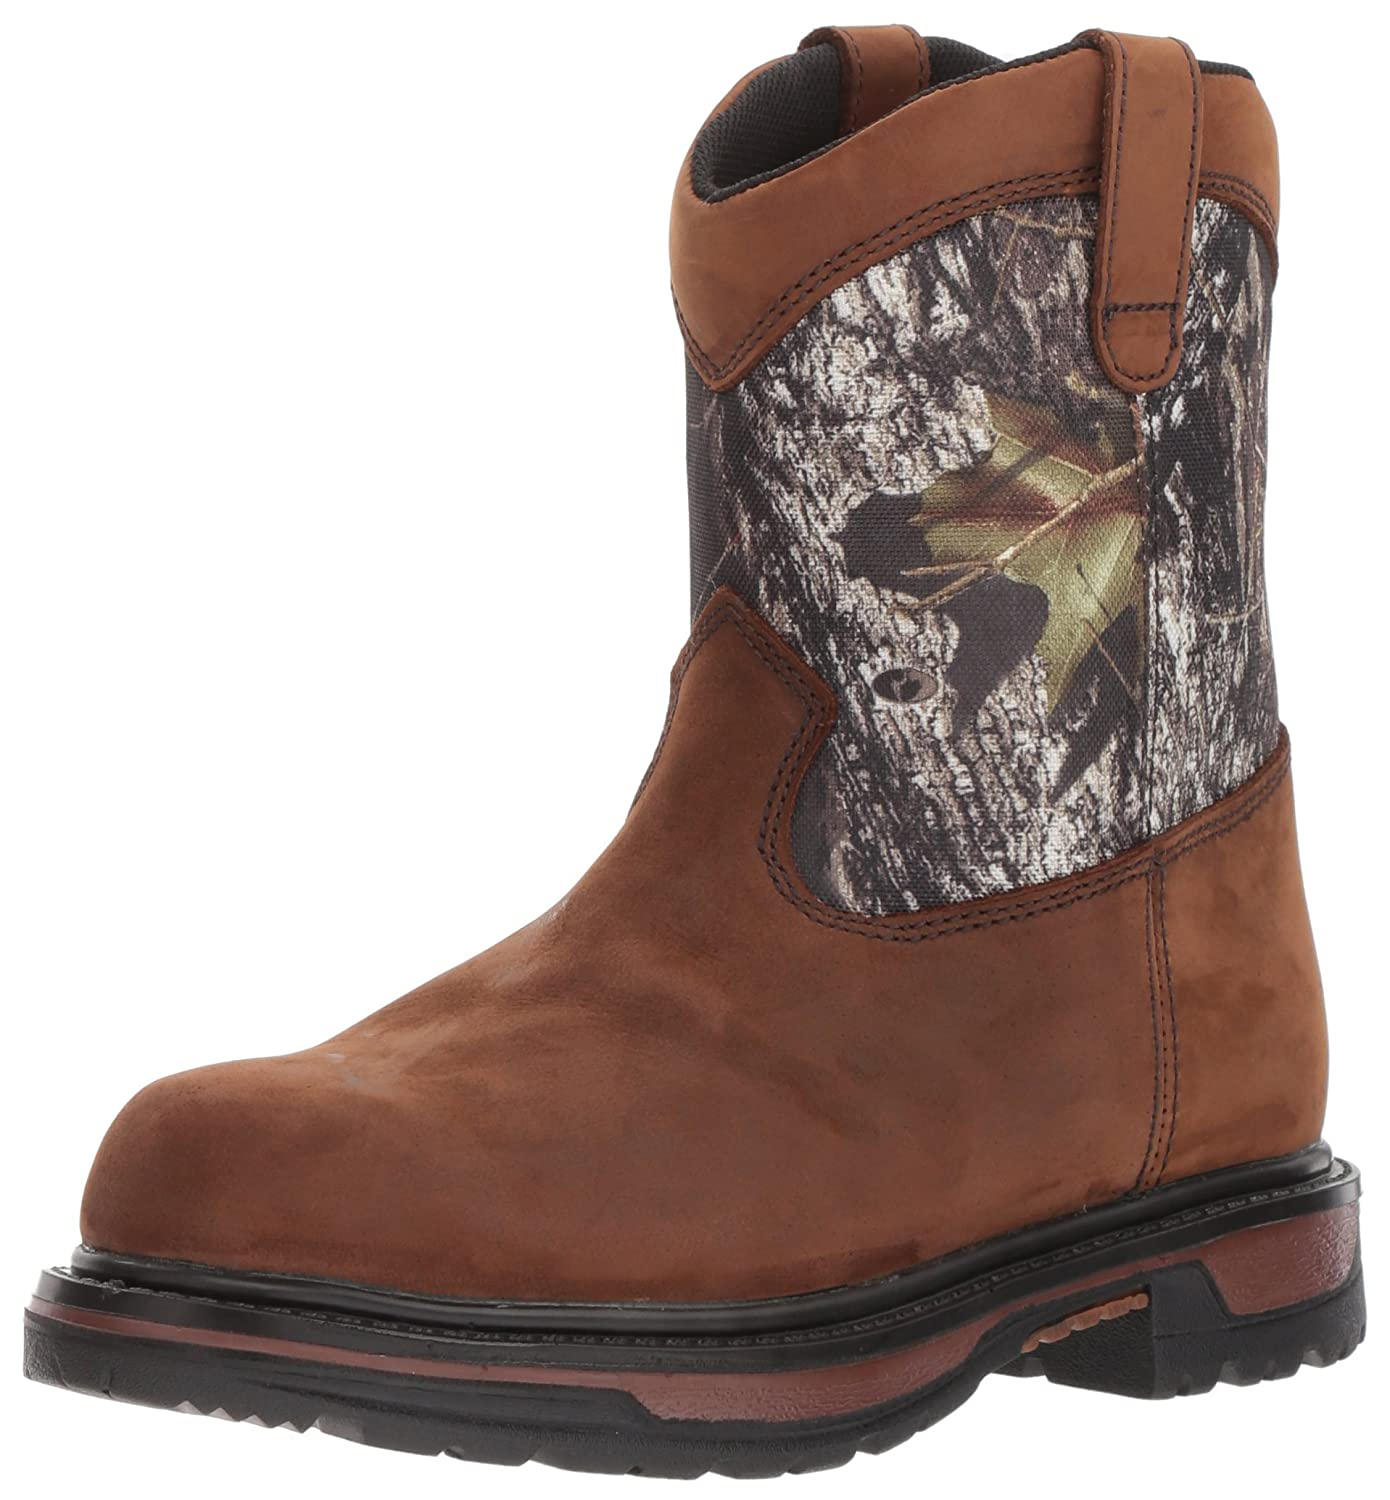 Rocky Kids' FQ0003633 Mid Calf Boot